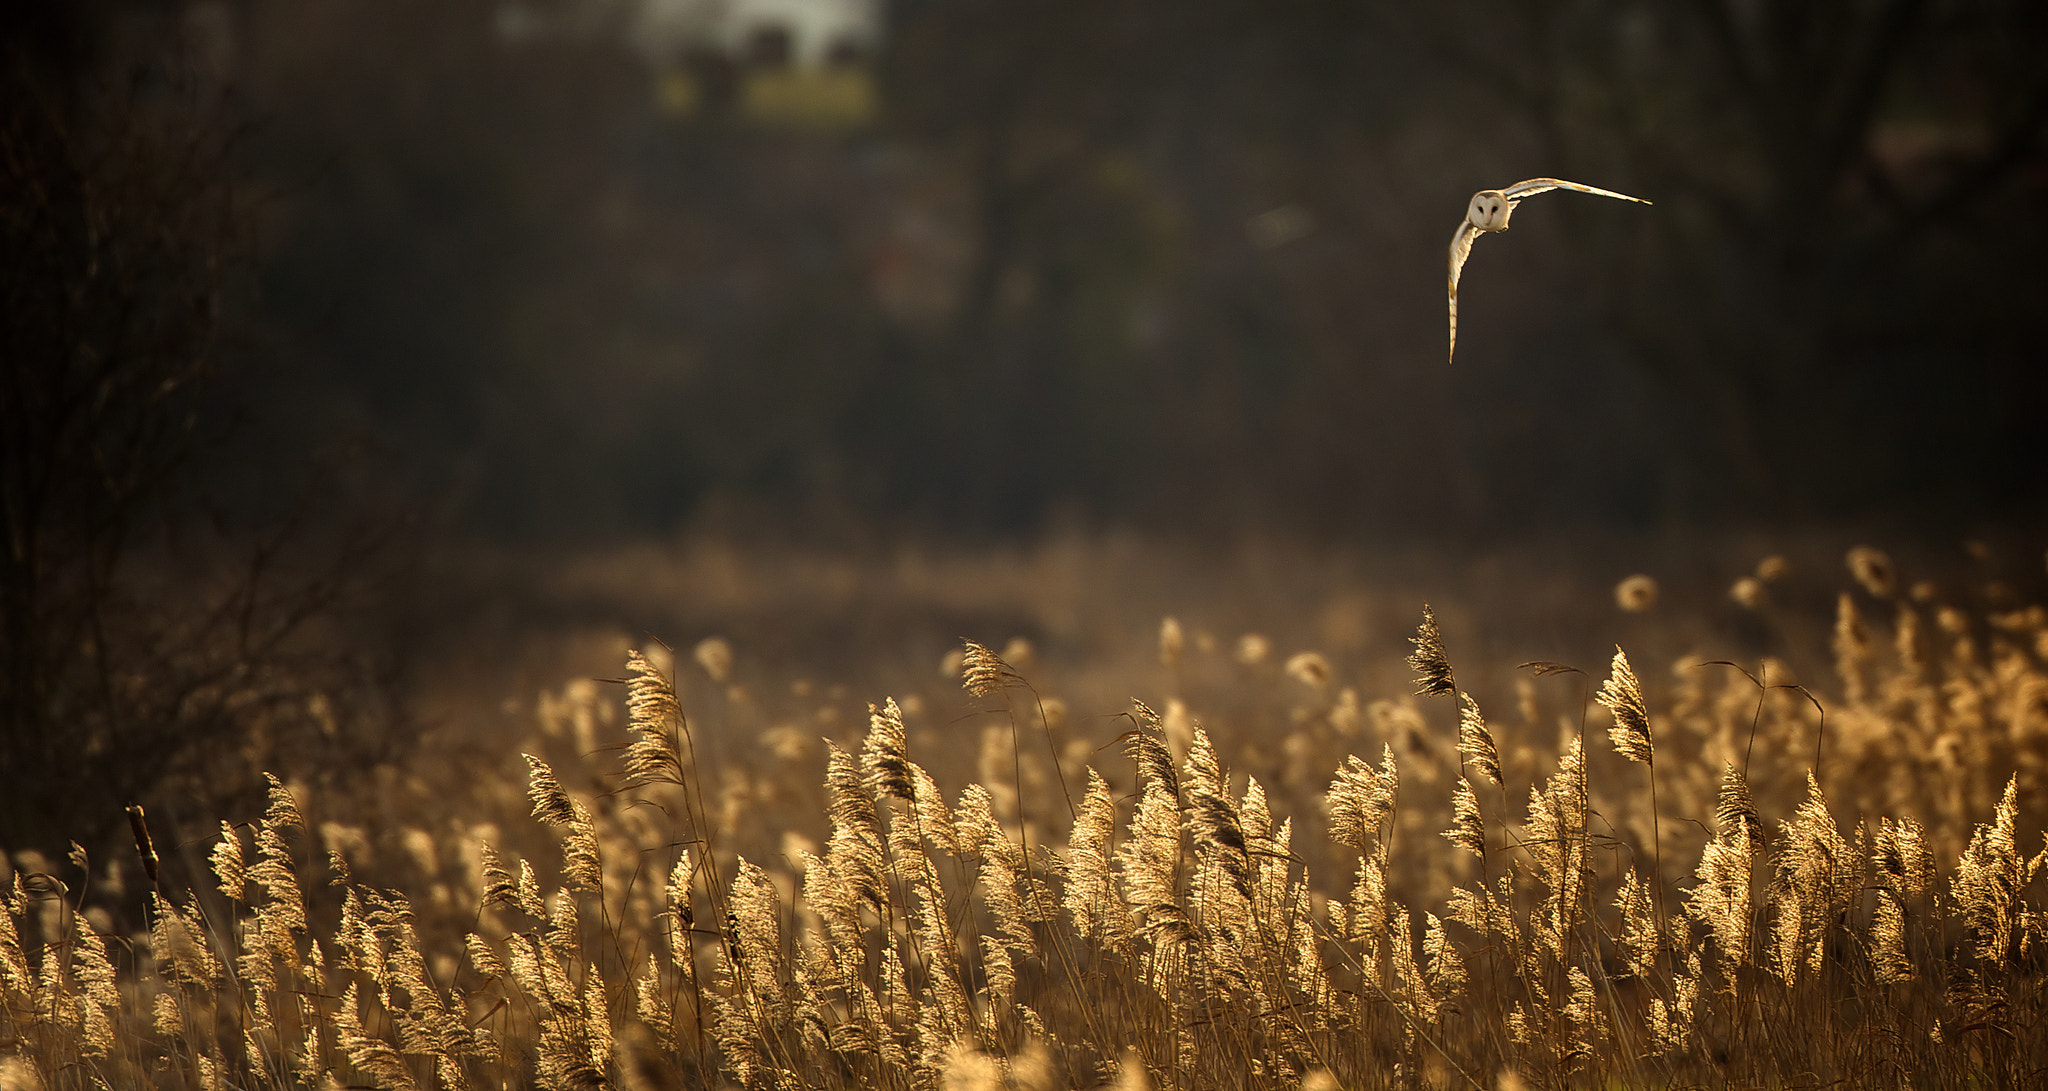 Photograph hunting at dusk by Mark Bridger on 500px